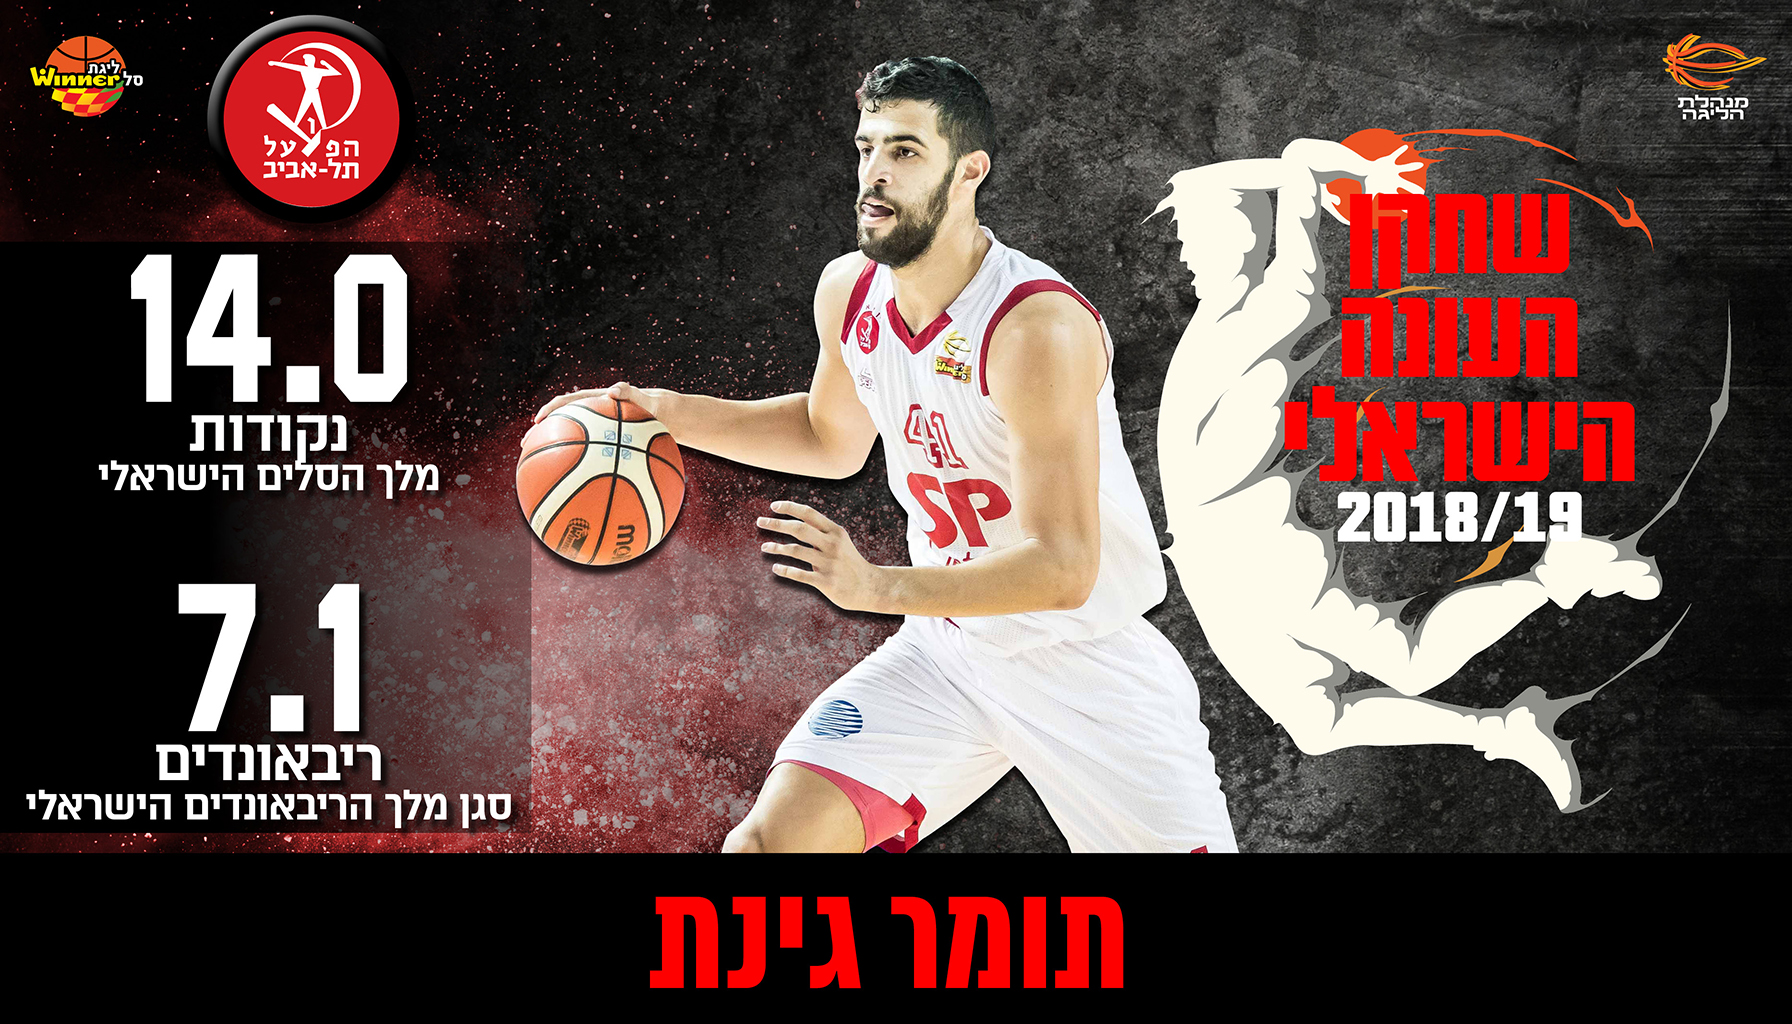 Israeli Player of the Year: Tomer Ginat